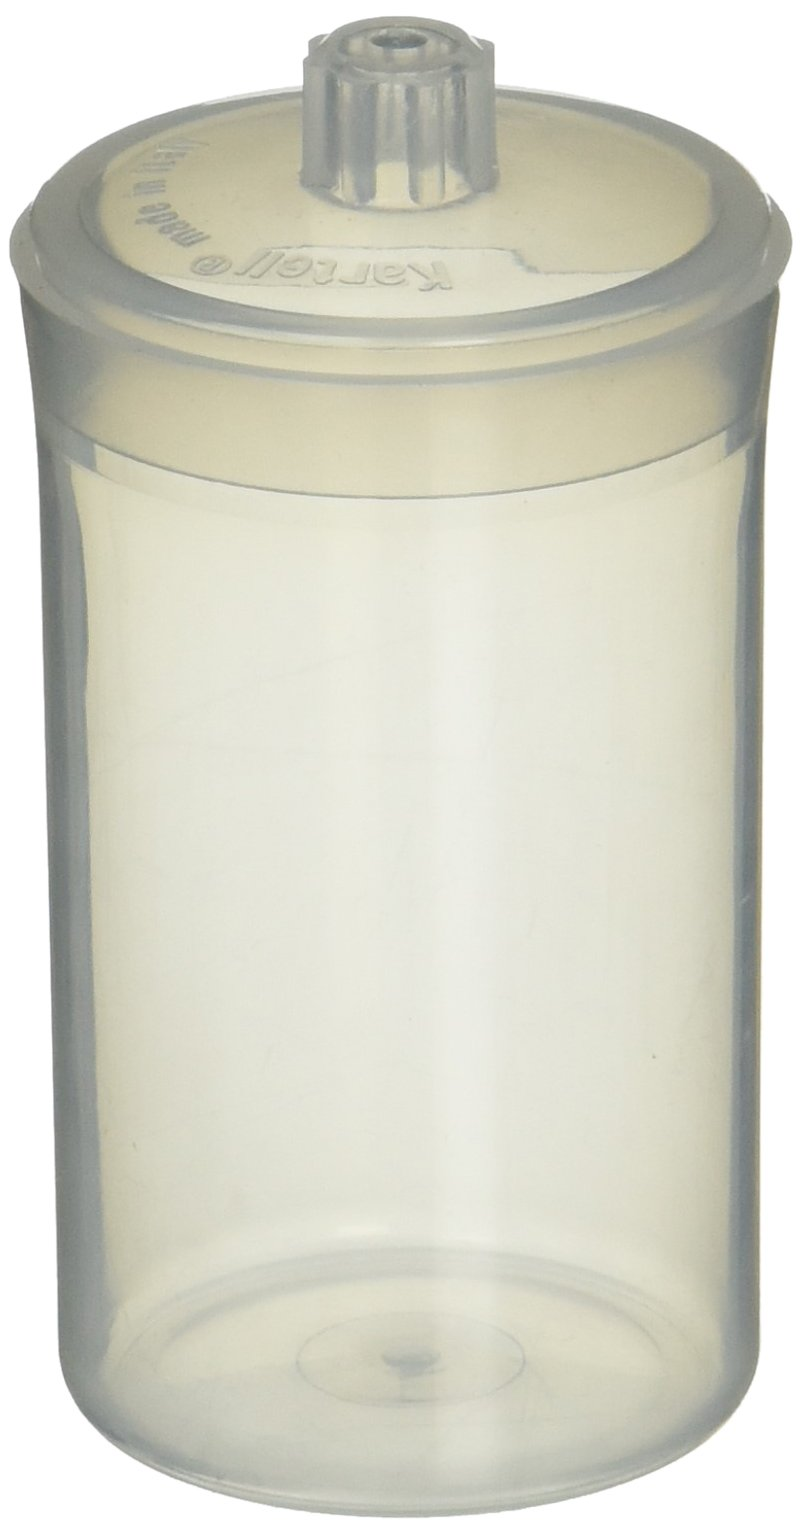 Kartell 1211Z85PK 261154-0005 Polypropylene Autoclavable Weighing Bottle with Polypropylene Lid, 40 mm OD x 69 mm Height, 60 ml Capacity, 14 g tare Weight (Pack of 10)